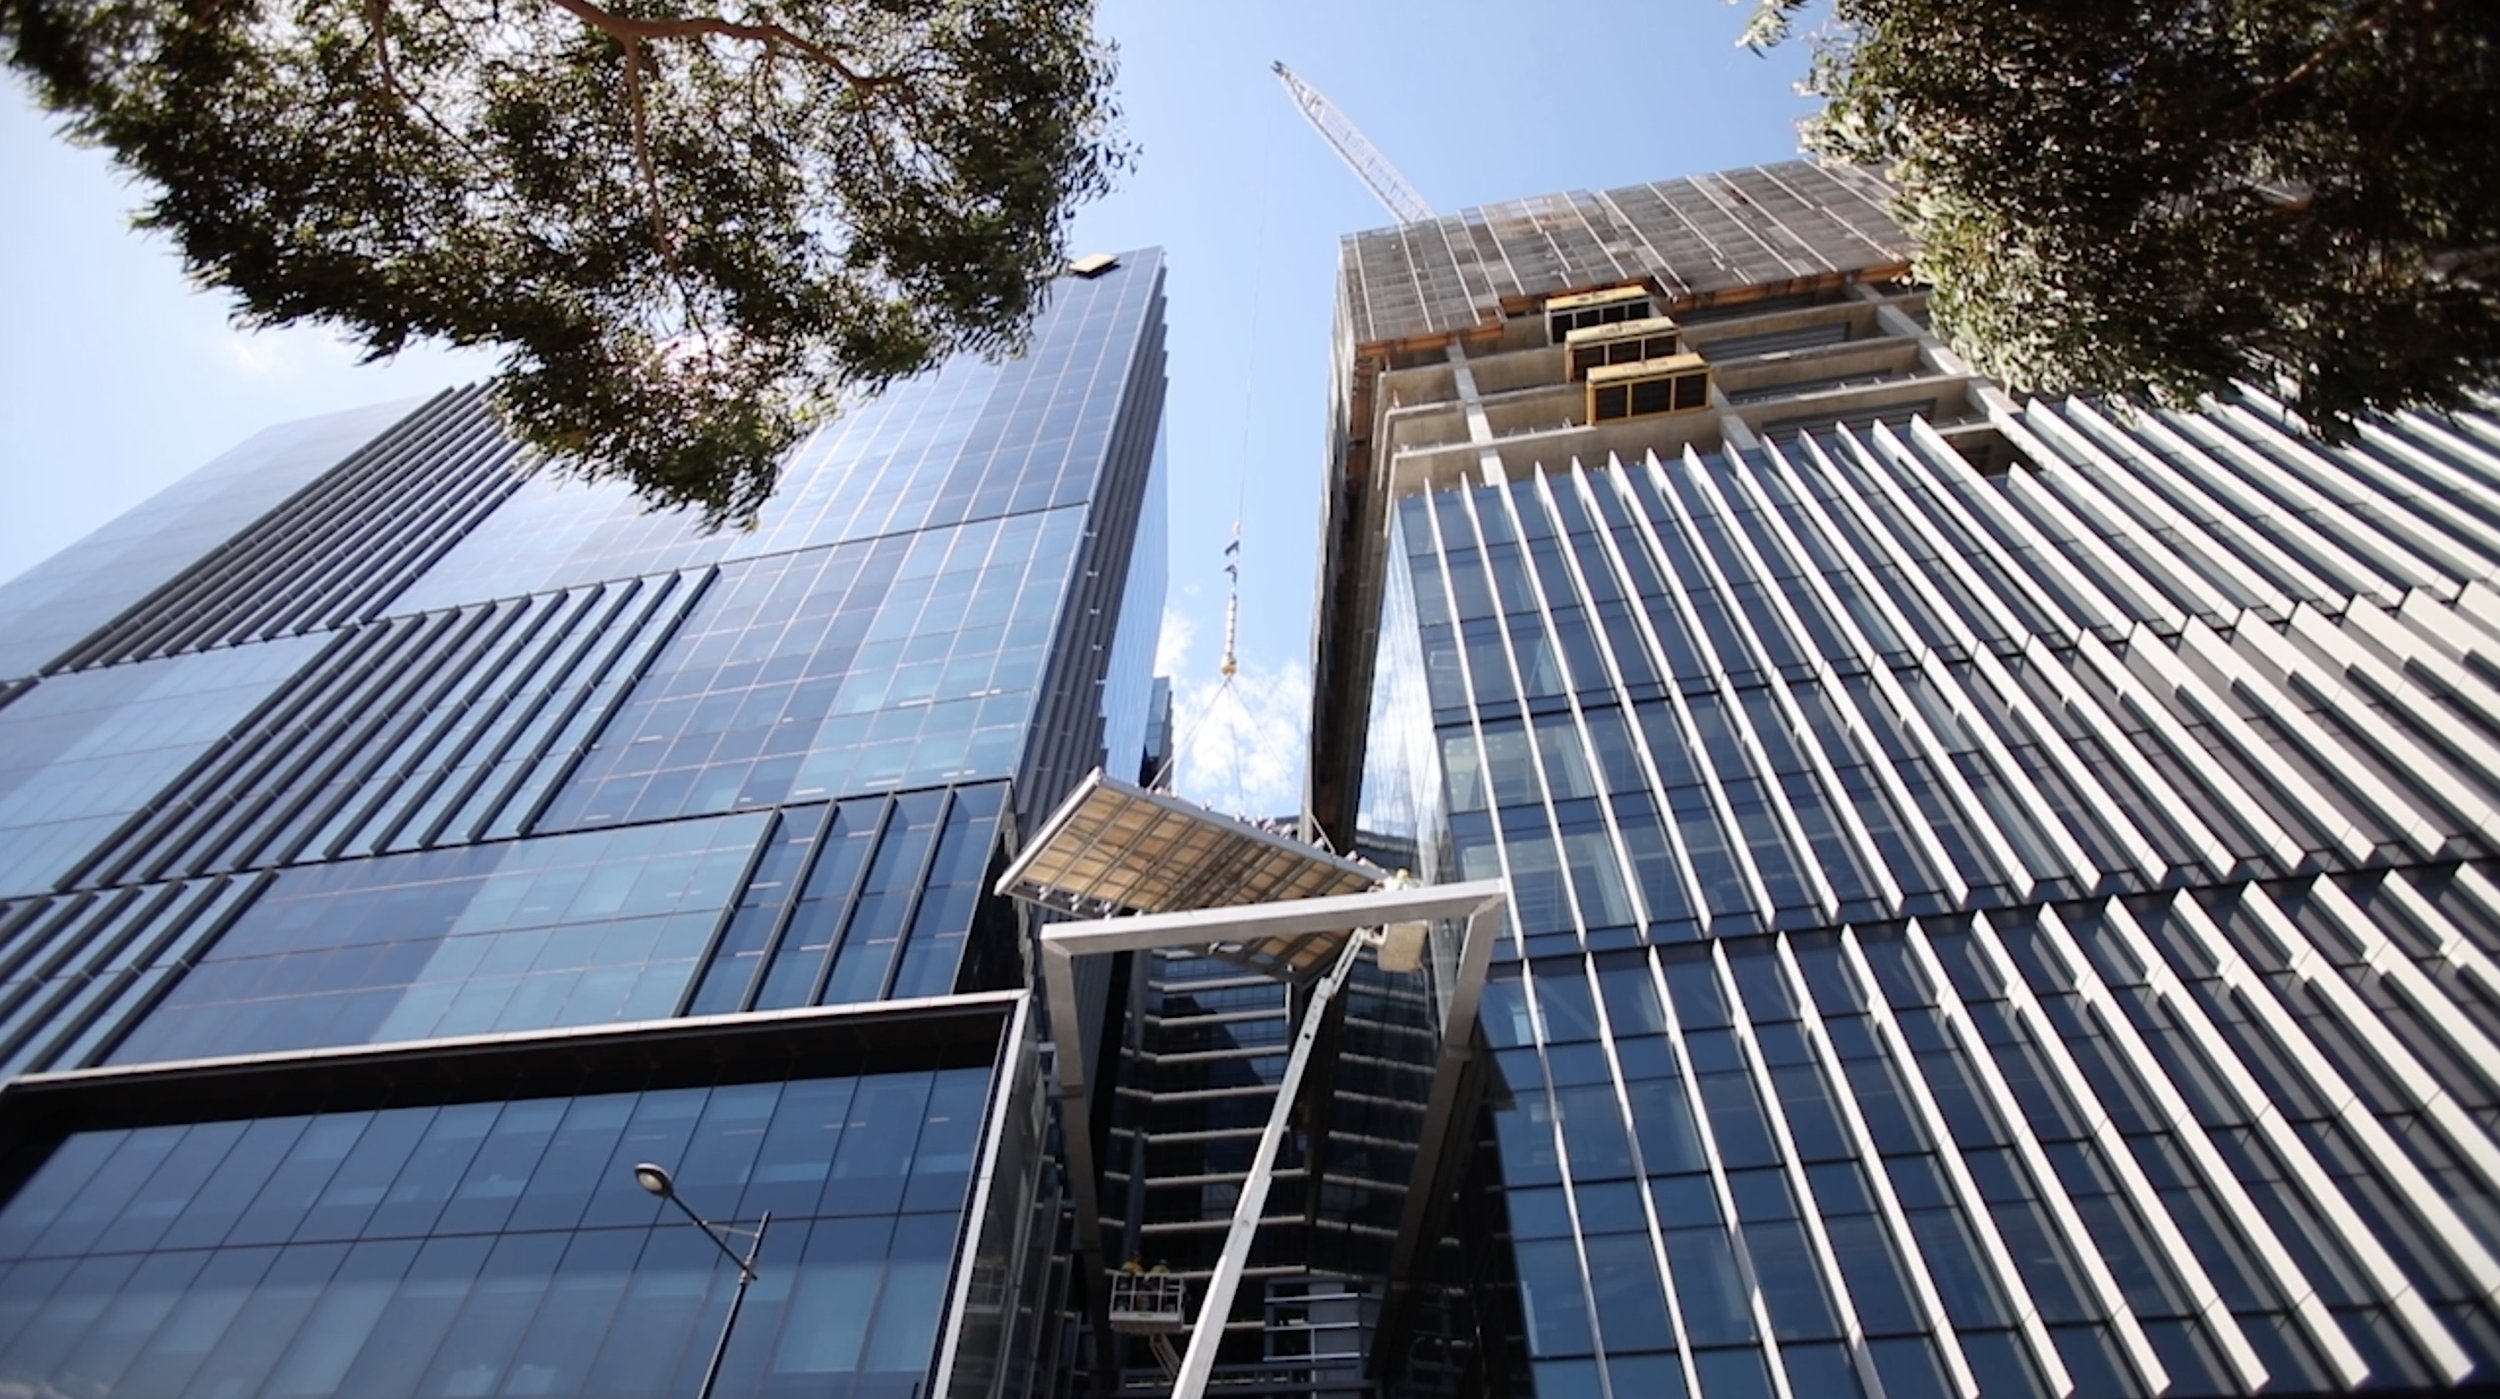 Client: Multiplex Project: Collins Square Roof Canopy Replacement